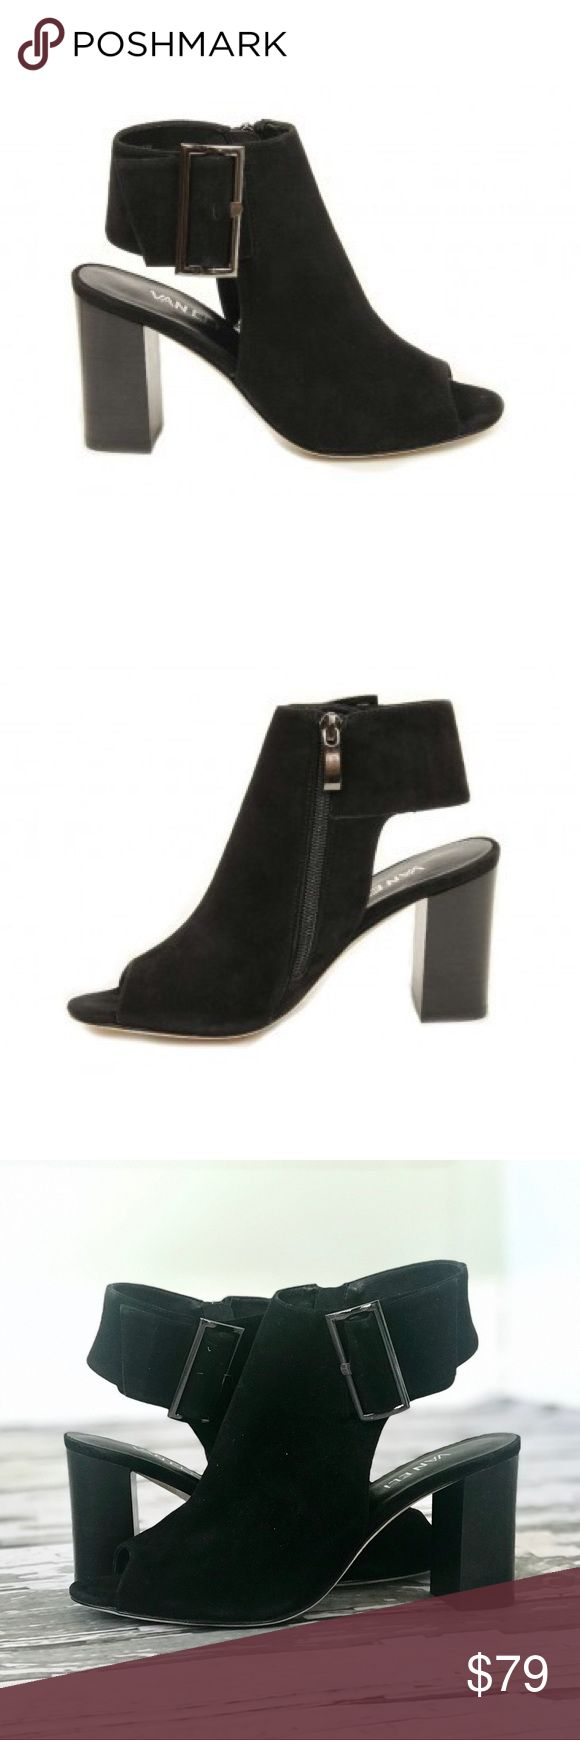 "VANELi 'Bisa' Black Suede Bootie 9M The Bisa is the showstopper this season! This suede peep-toe bootie with a cut-out heel will pair fantastically with any outfit. A flashy yet functional, oversized metal buckle will give you a perfect fit along with an inside zipper for easy on and off. Fully lined with a 2-3/4"" stacked heel, a padded insole and a leather sole. Vaneli Shoes Ankle Boots & Booties"